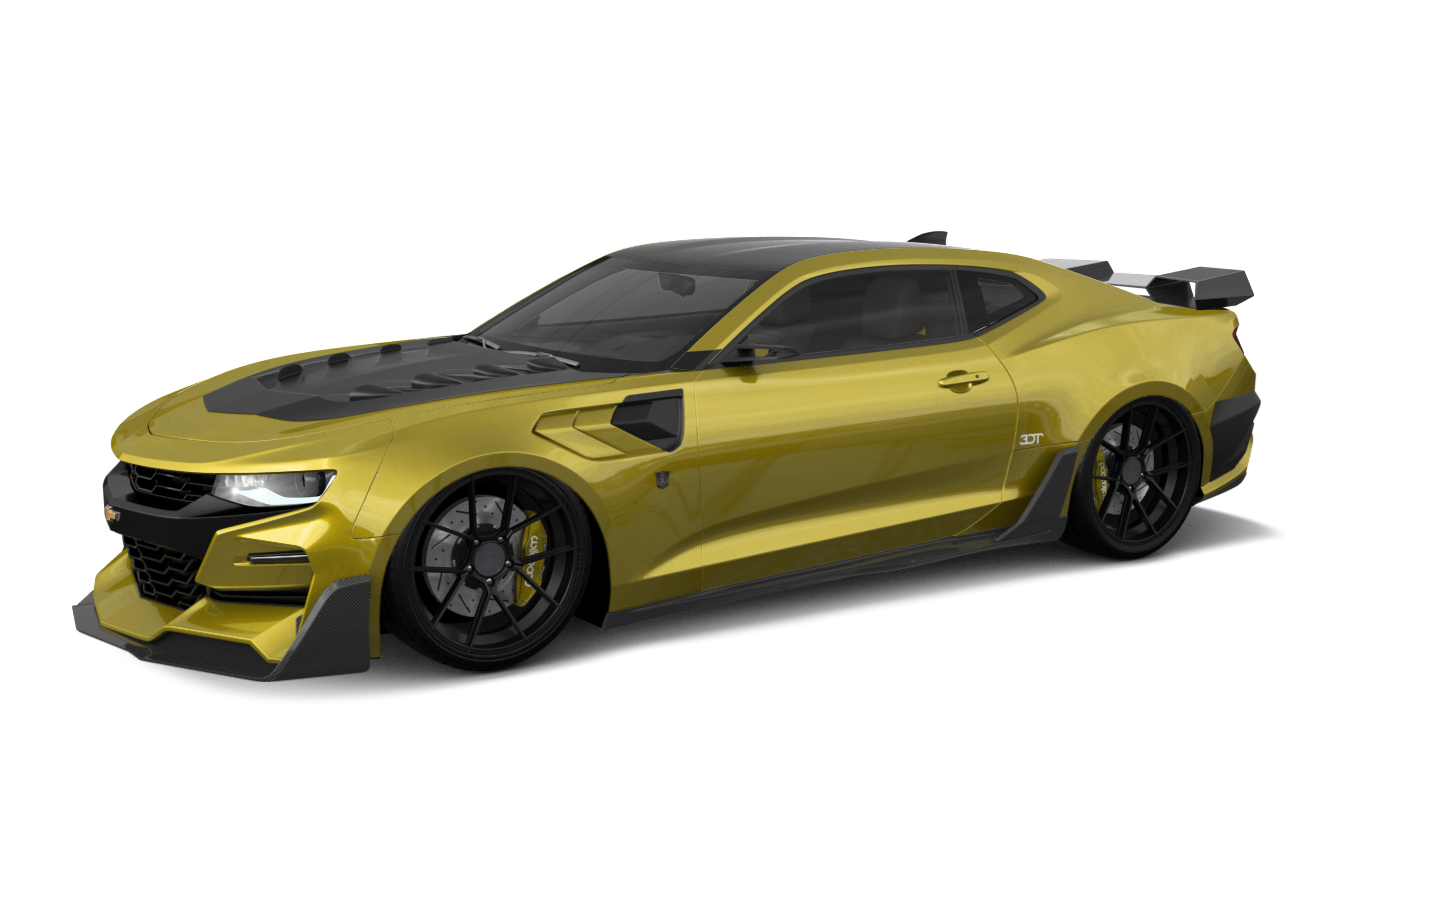 Chevrolet Camaro 2 Door Coupe 2016 tuning